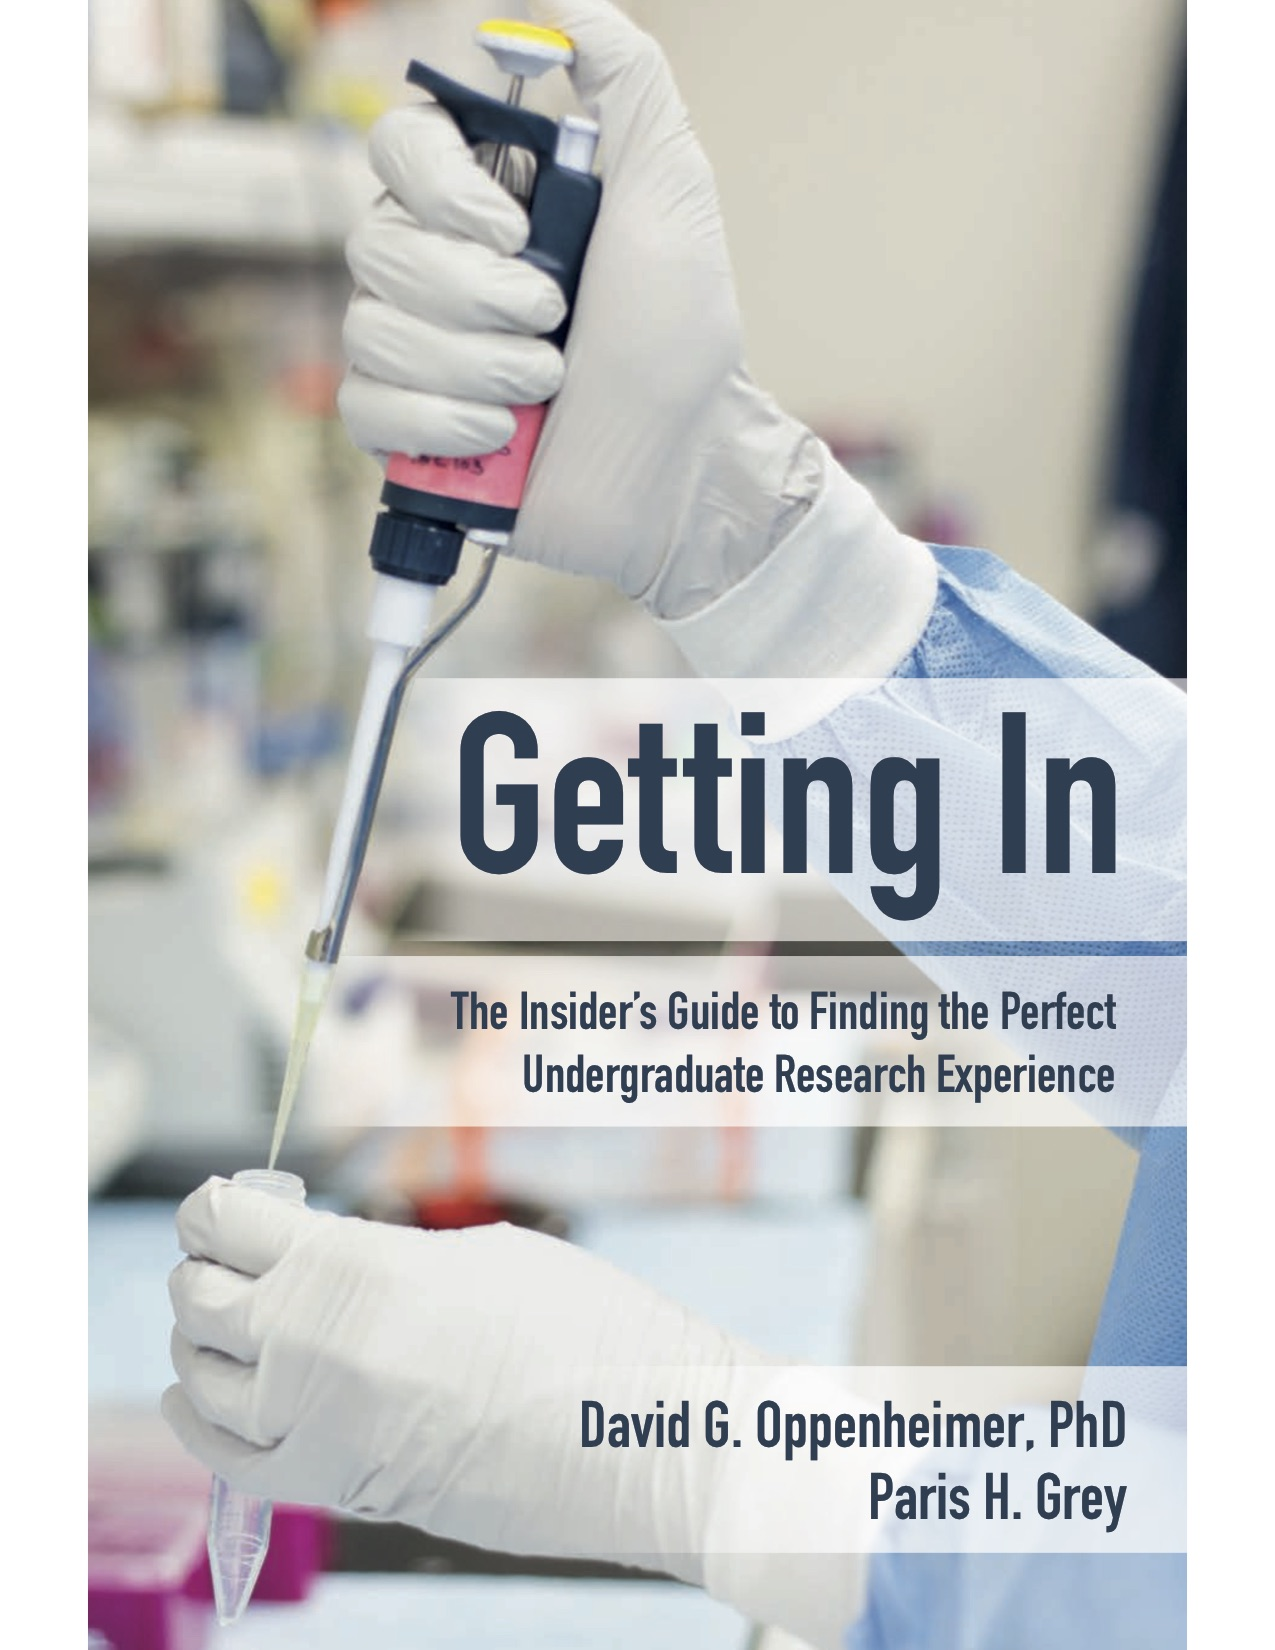 Getting In: The Insider's Guide to Finding the Perfect Undergraduate